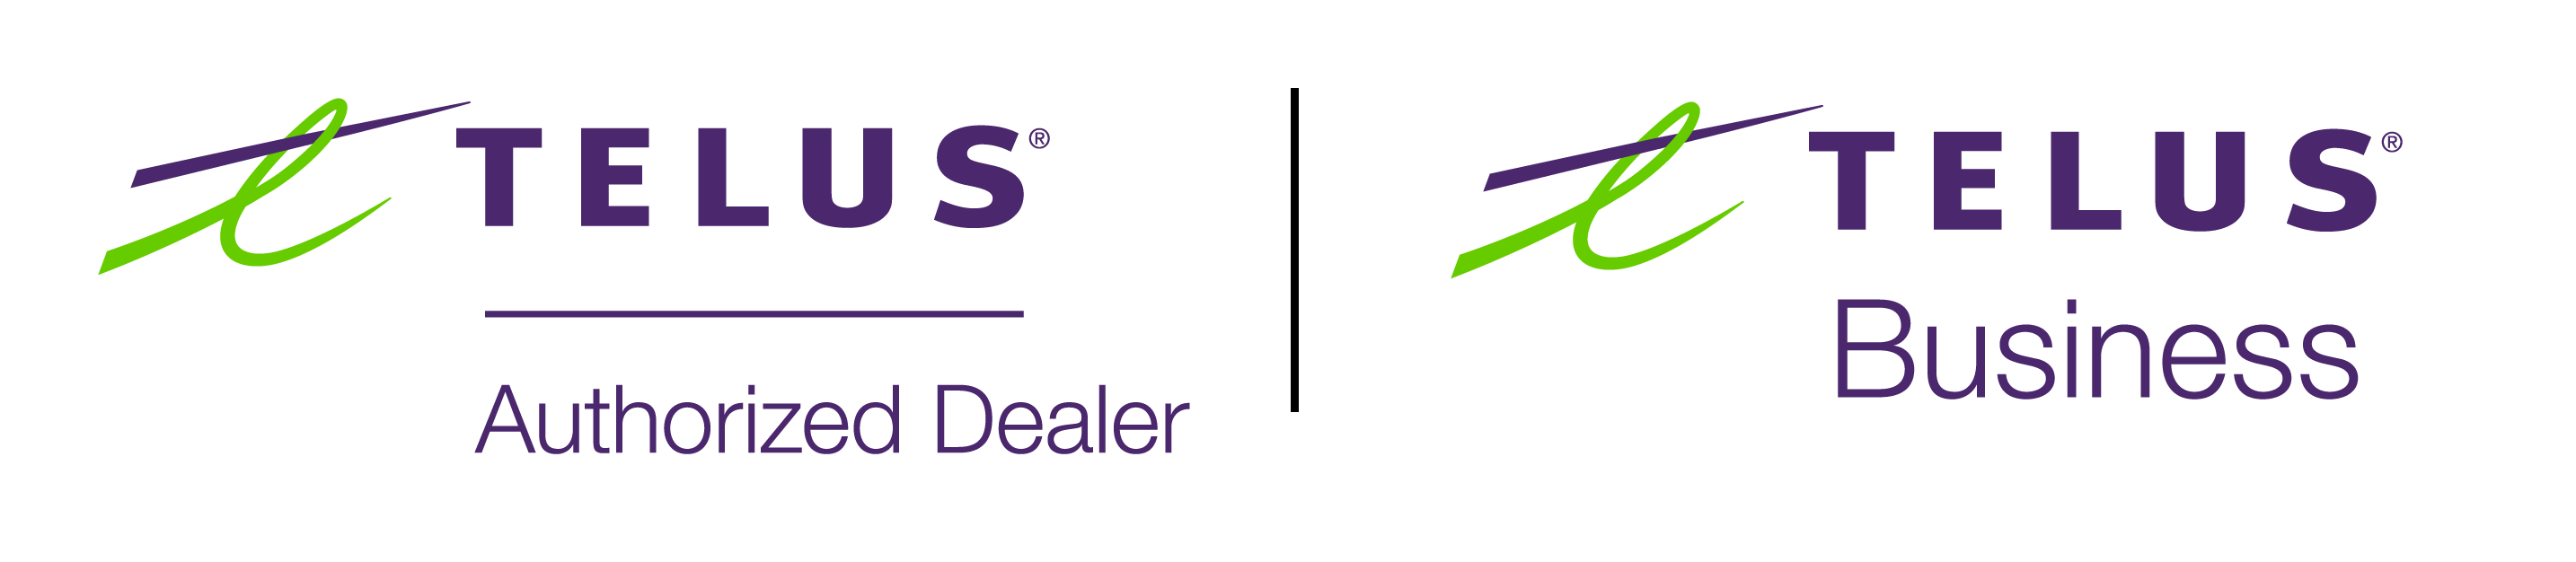 TELUS Authorized Dealer Logo